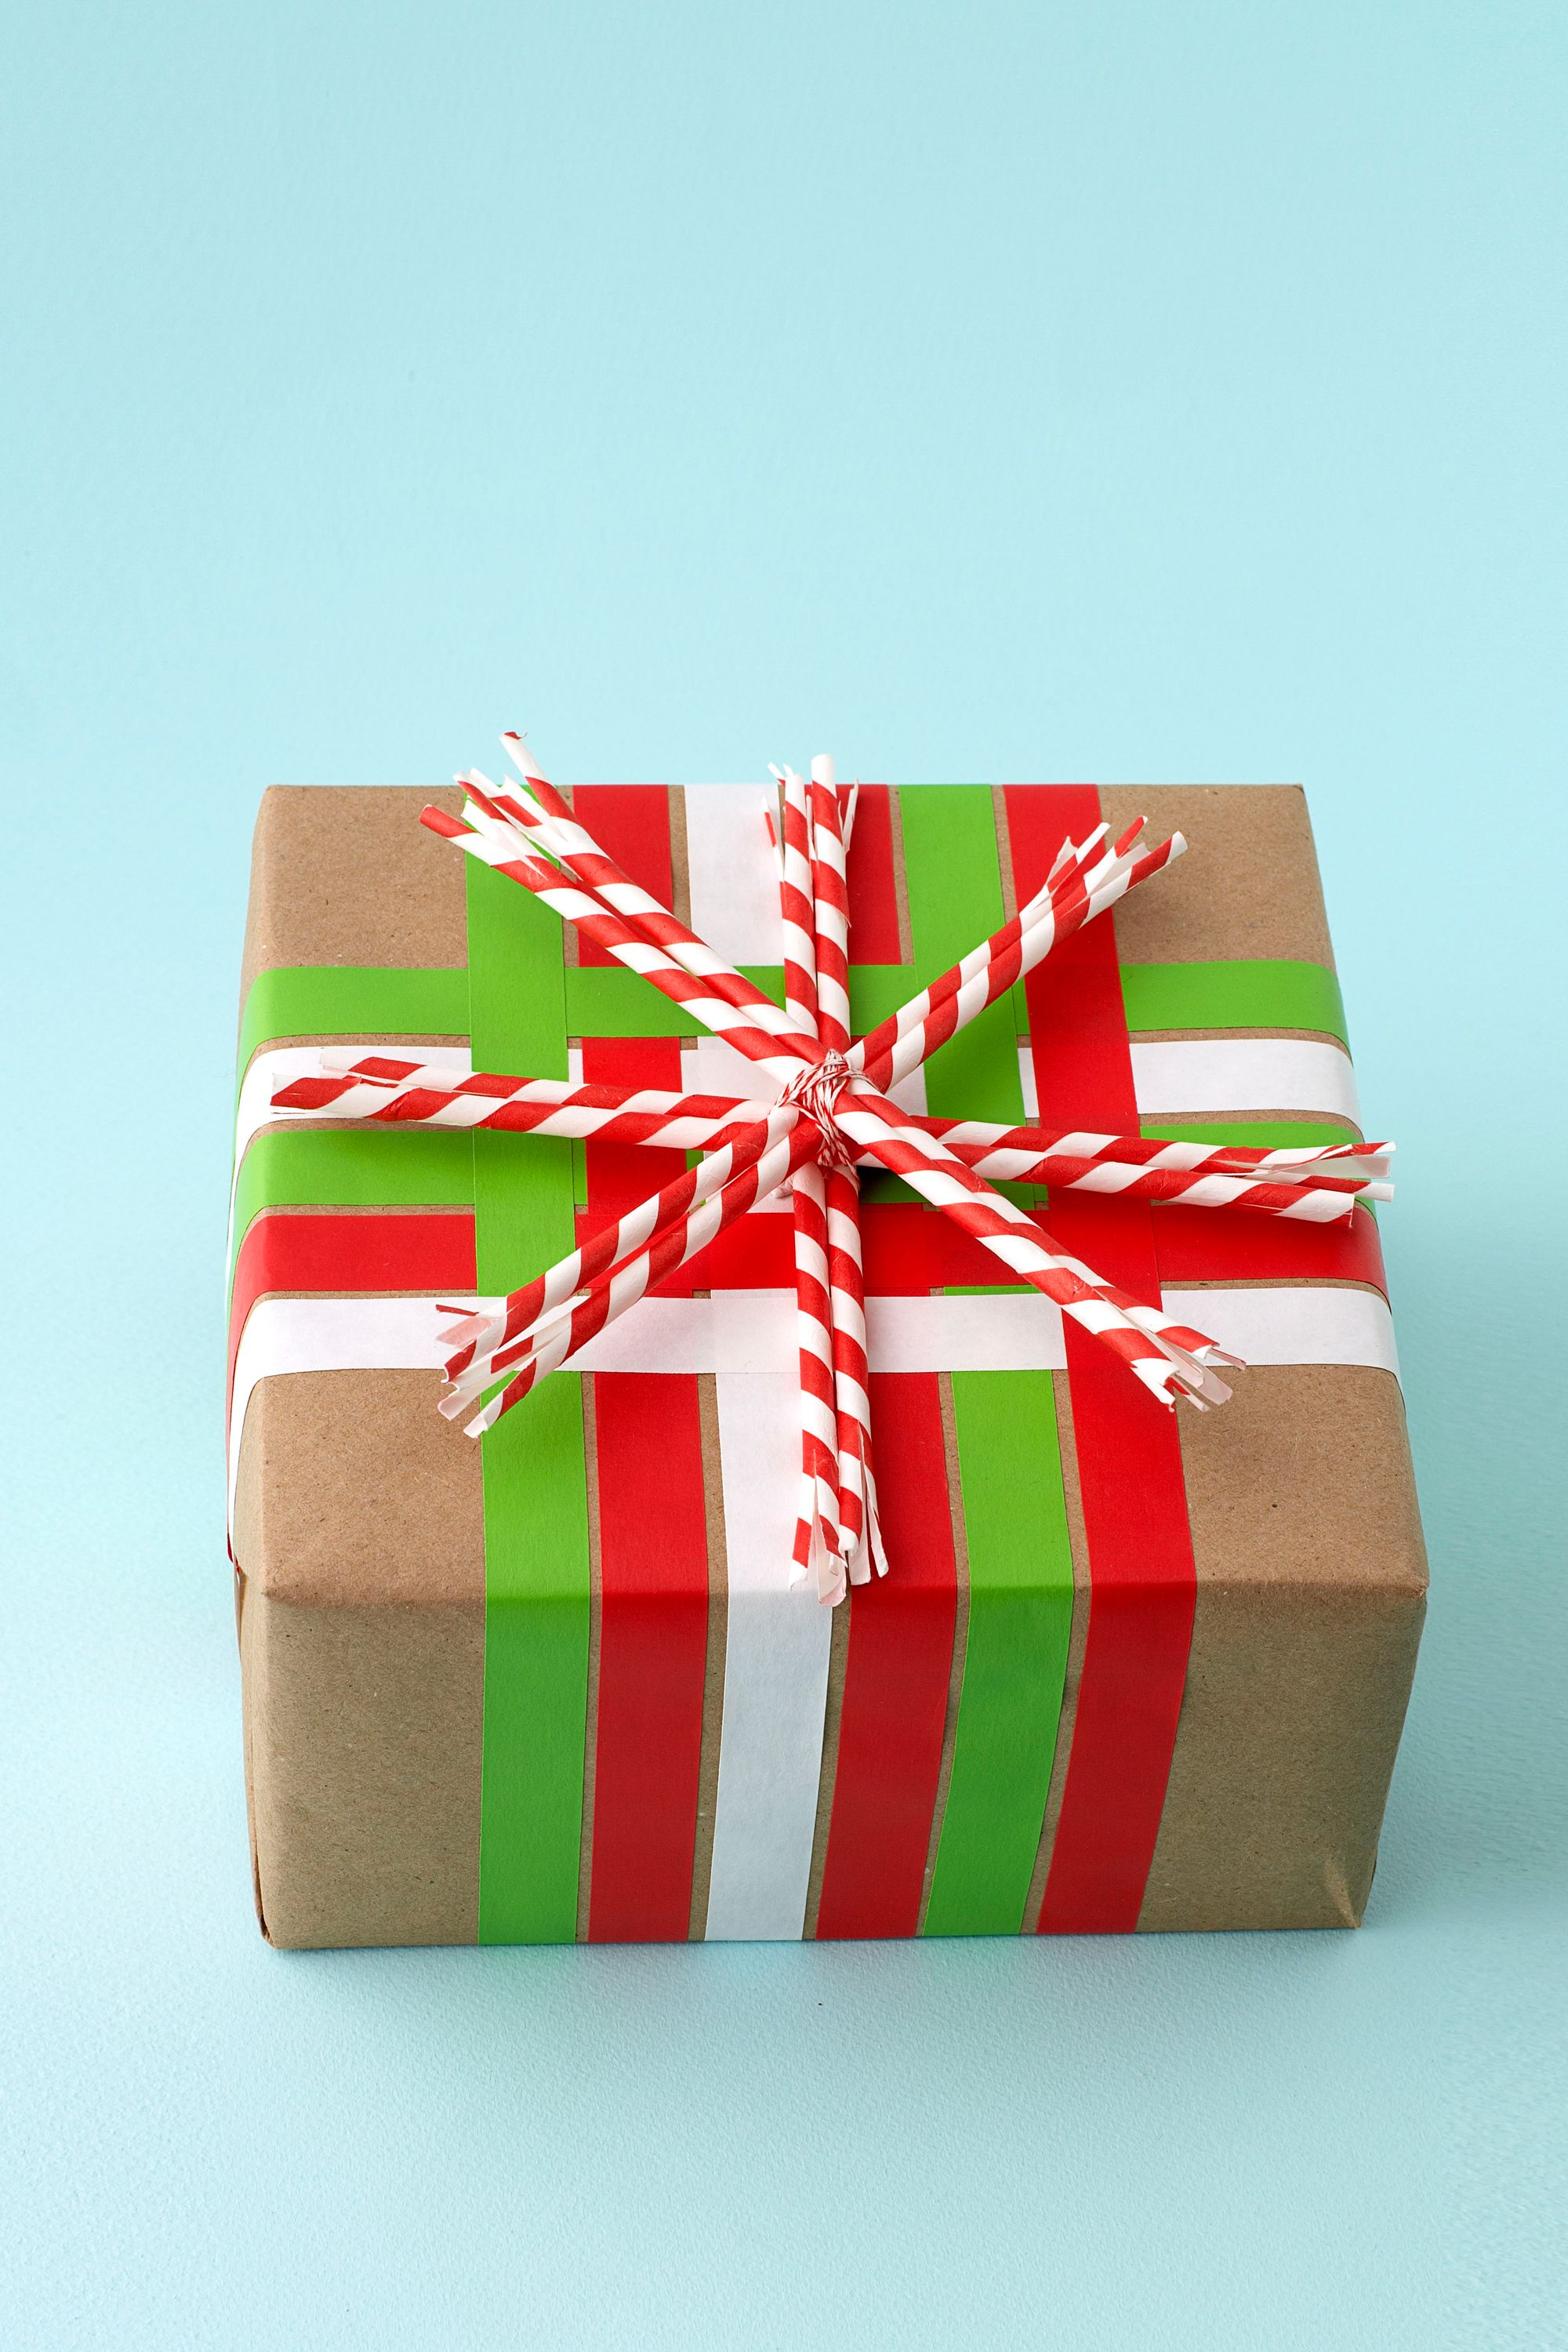 Superior Gift Wrap Ideas For Christmas Part - 12: Gift-wrapping Ideas Tape Art